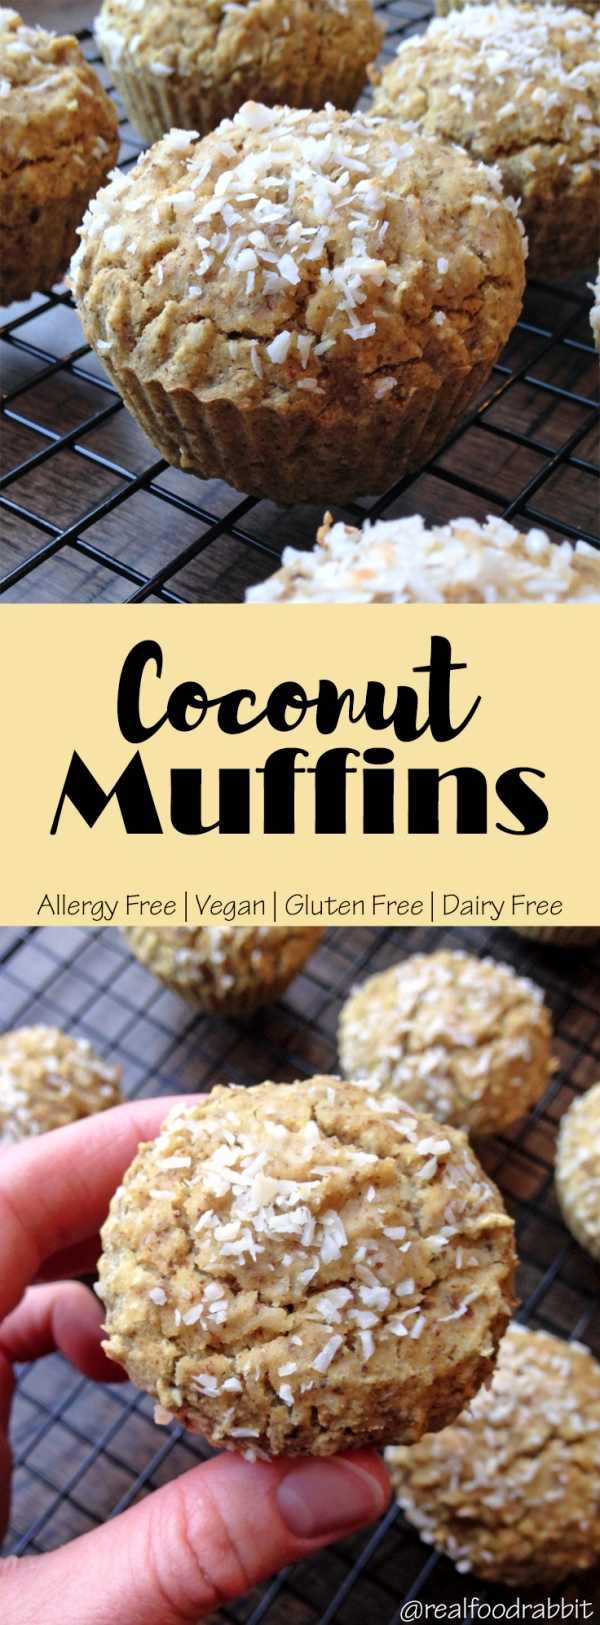 Allergy Free Coconut Muffins.jpg